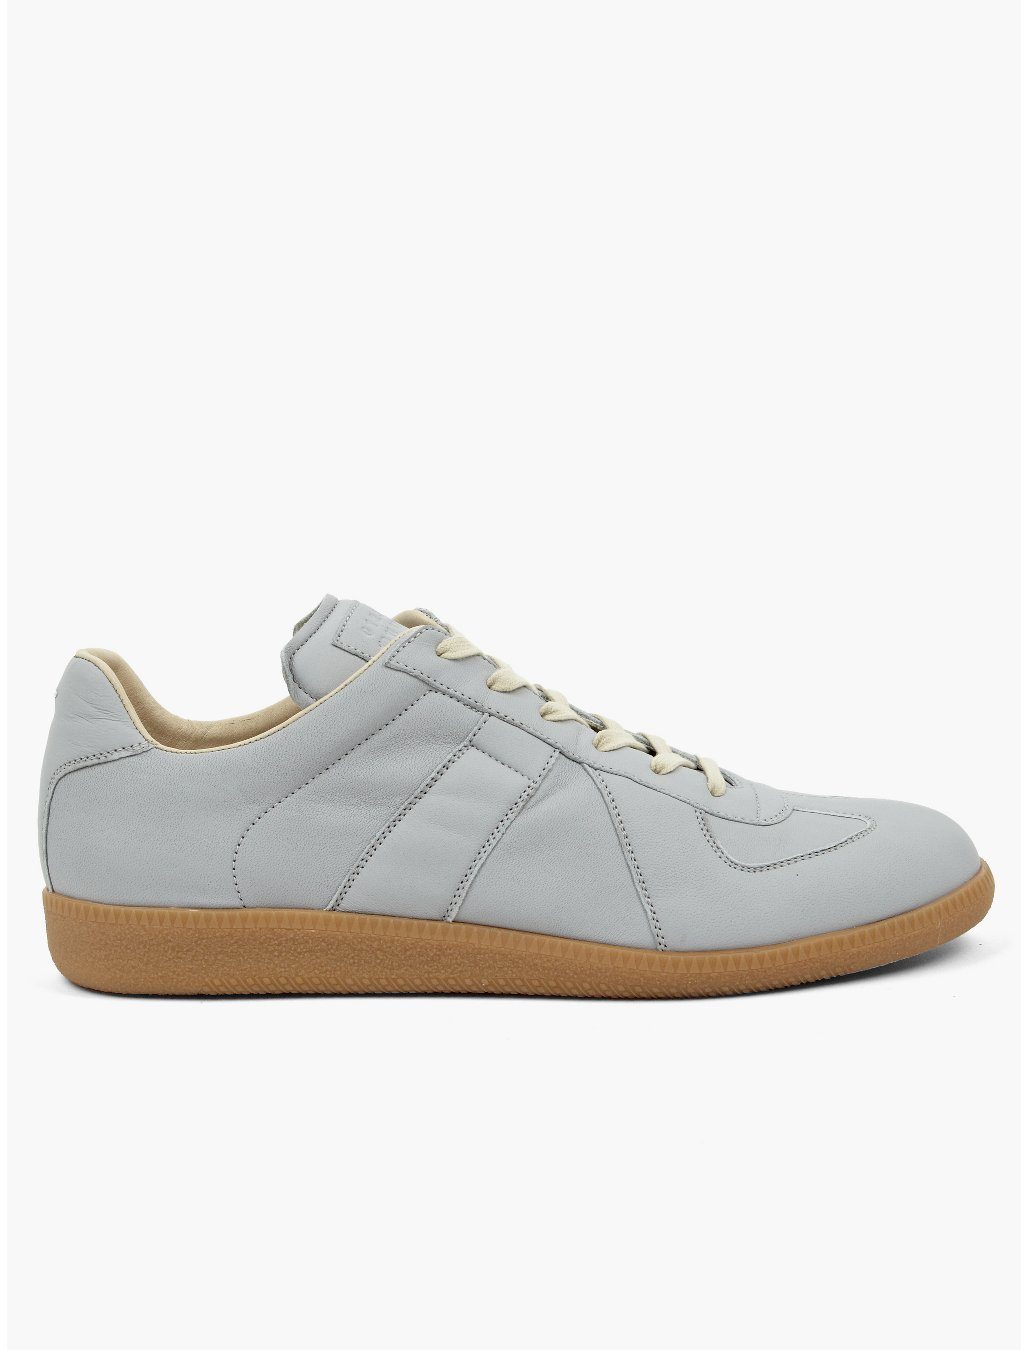 Maison martin margiela 22 mens grey replica sneakers in for Replica maison martin margiela